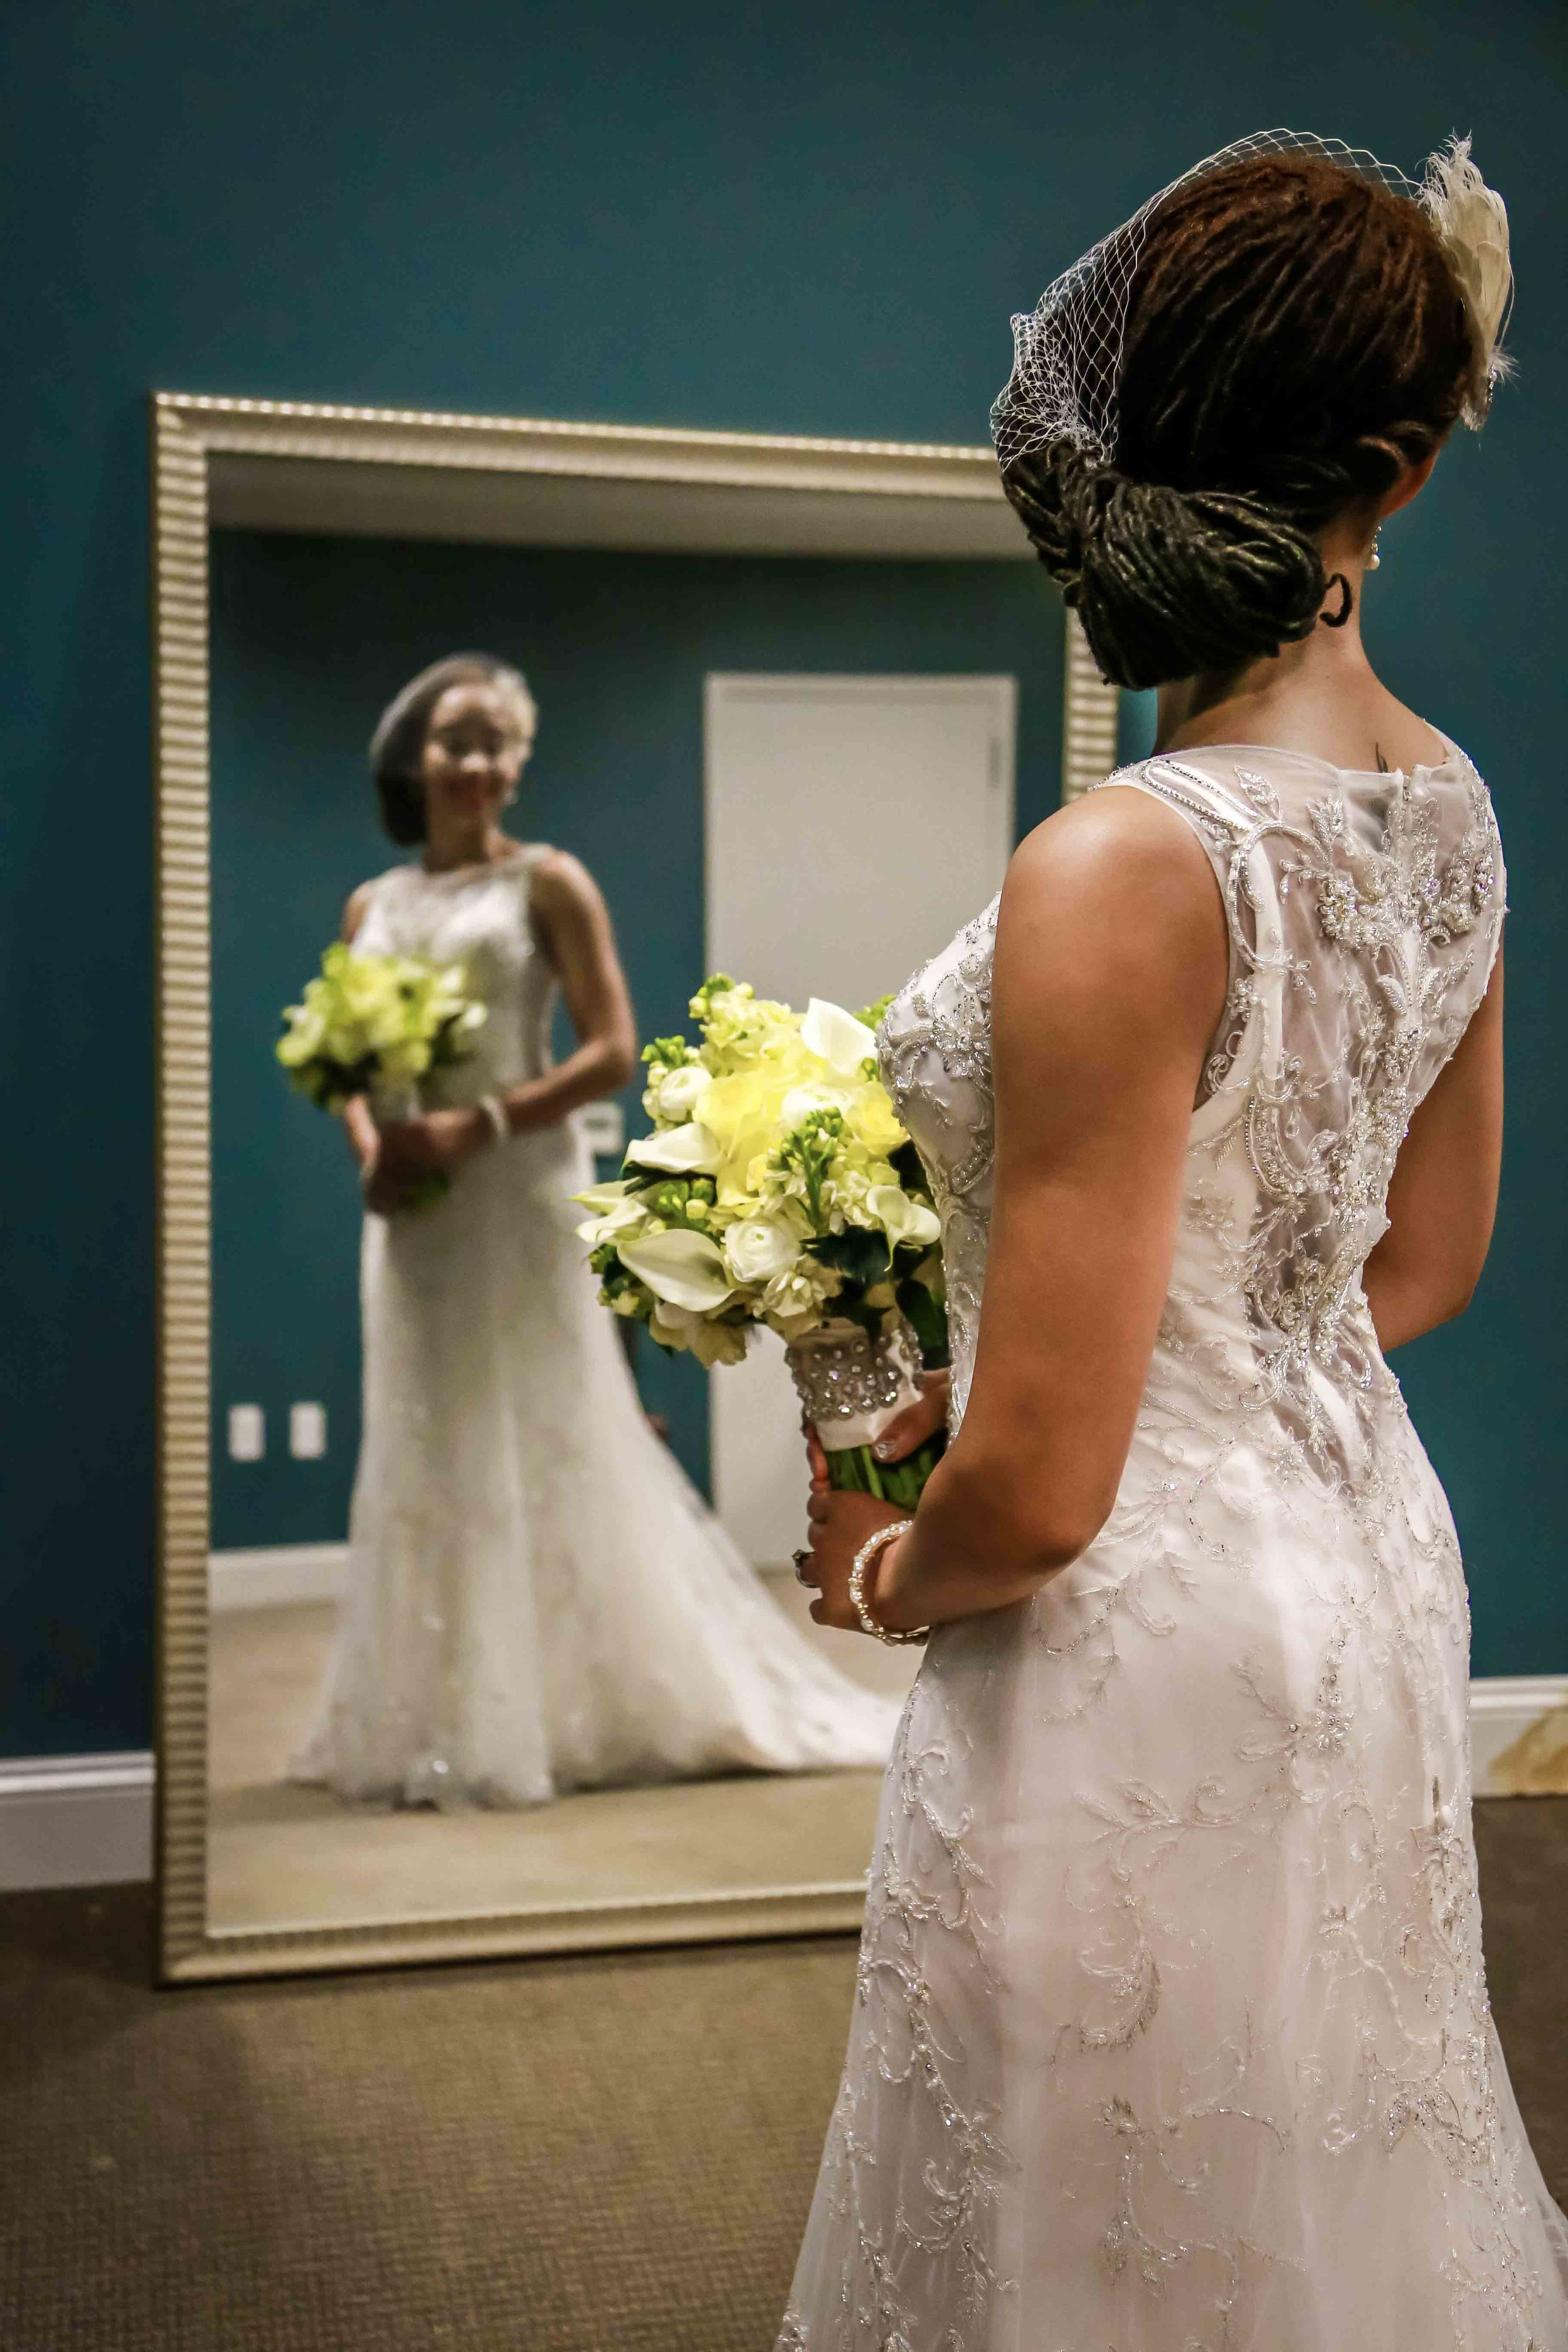 African Black bridal shower photographer in Memphis Collierville TN.jpg